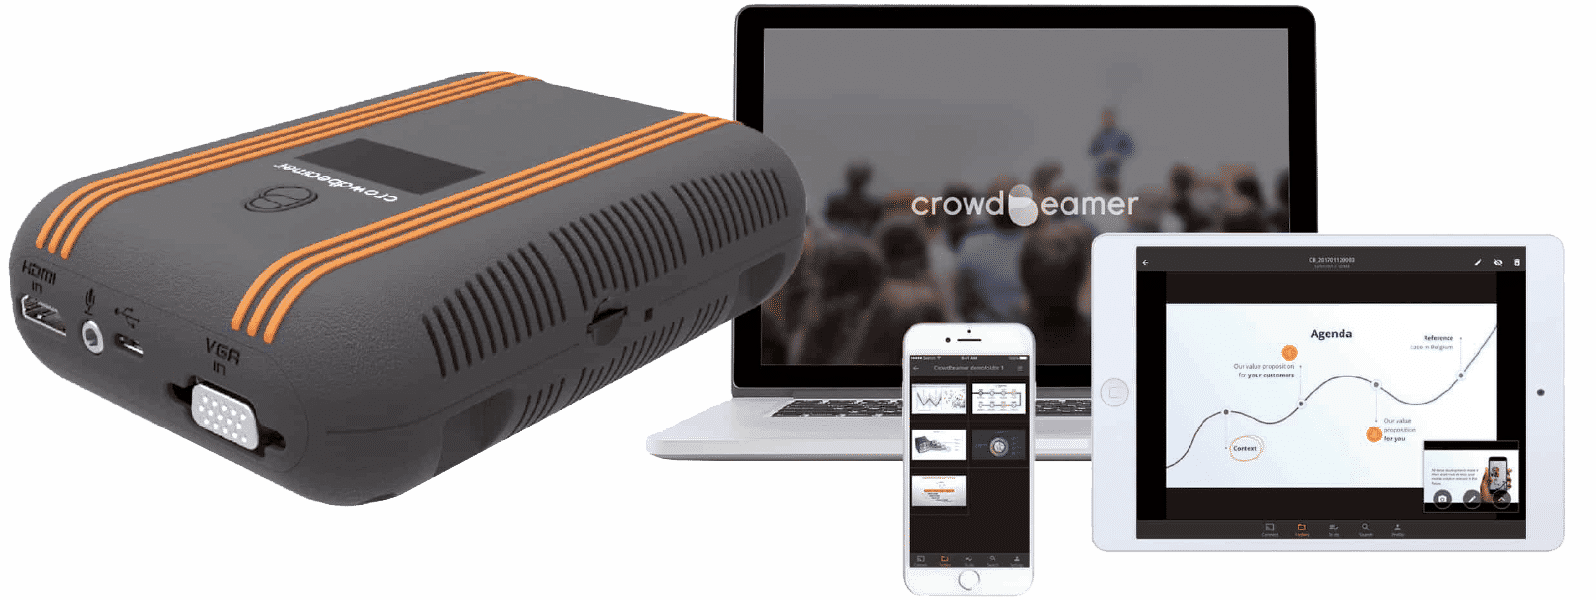 Book a demo, and learn more about the crowdbeamer device and app